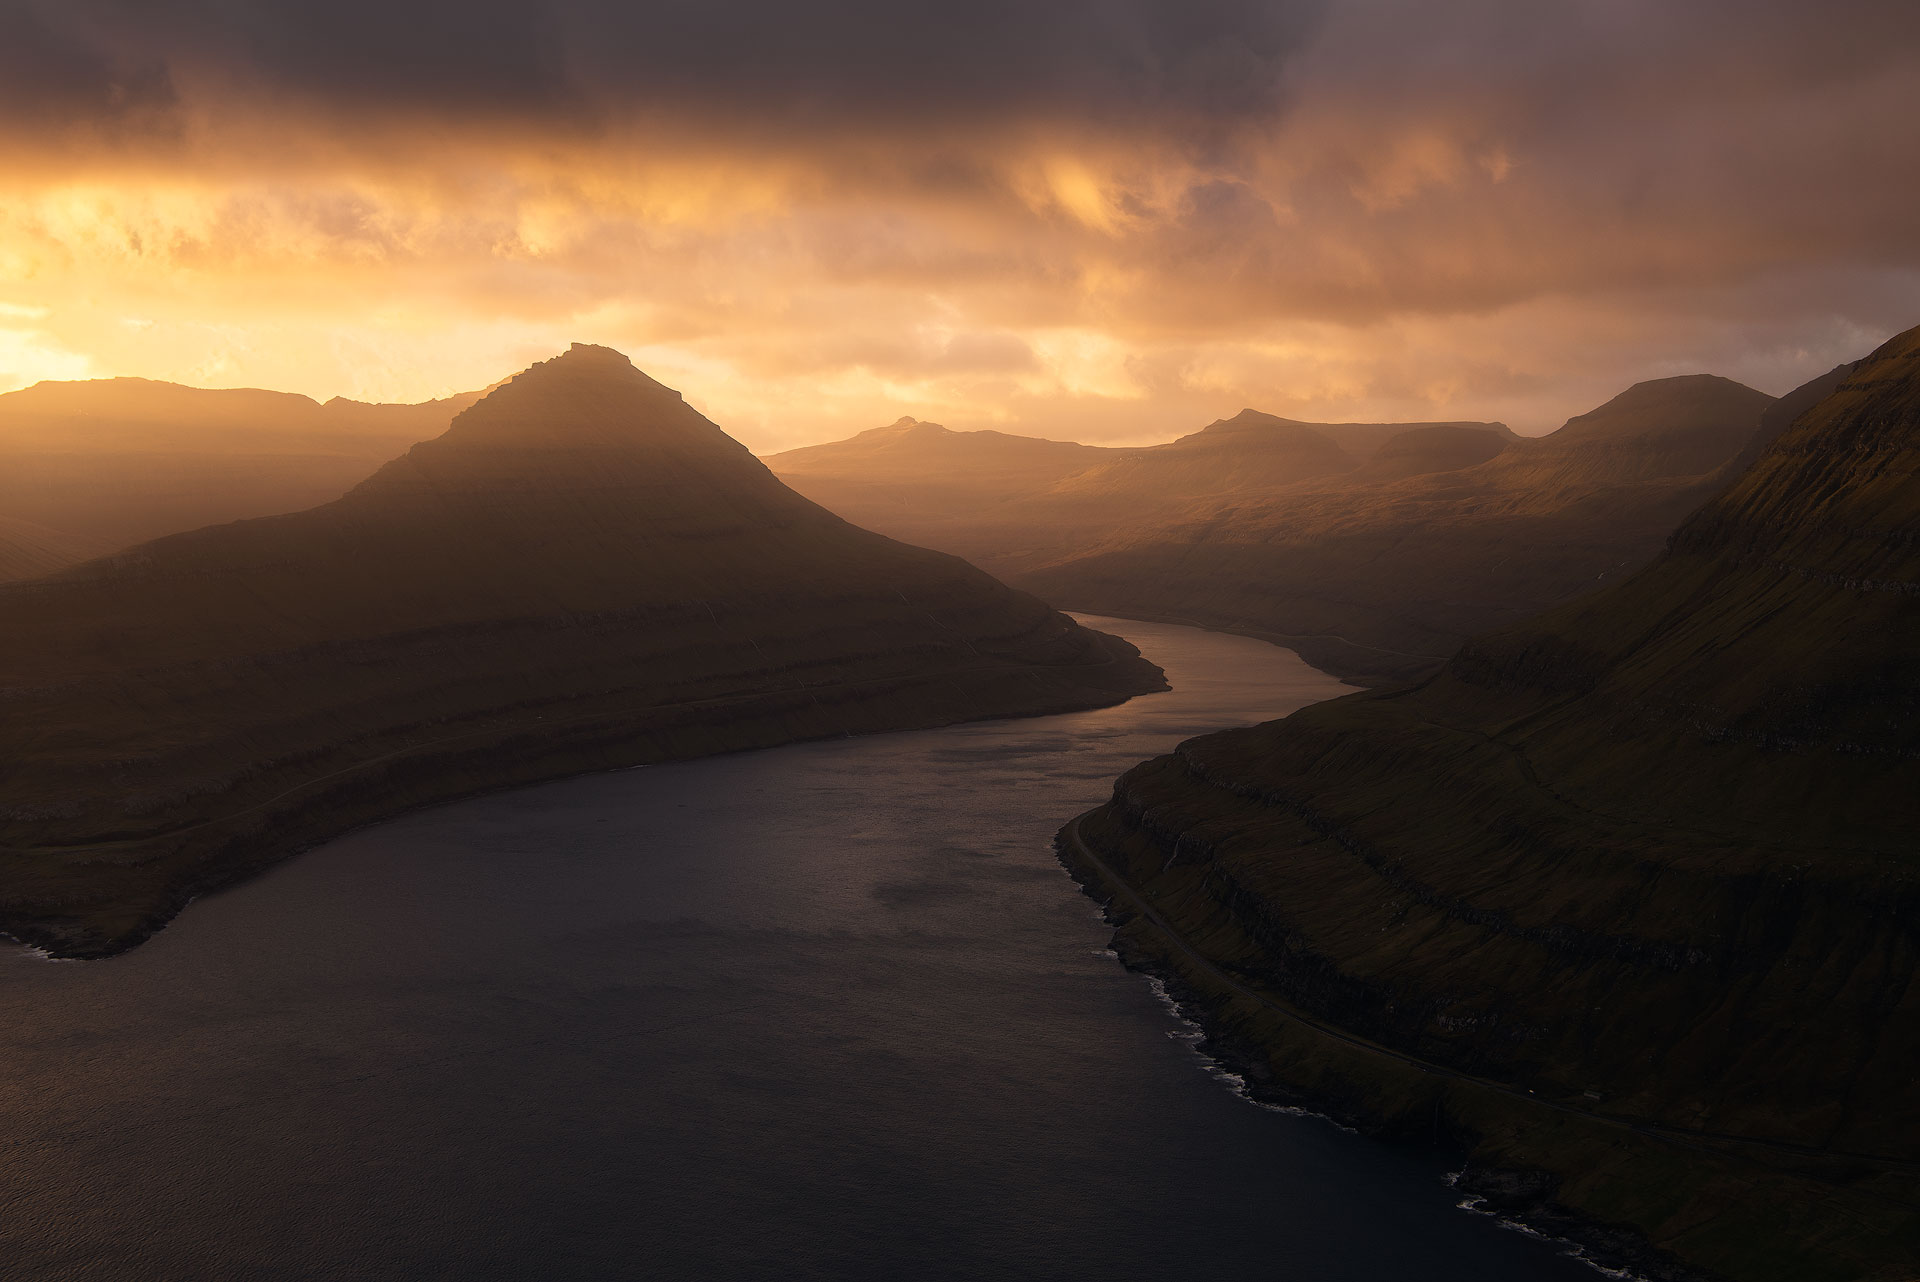 Golden hour over mountains and water